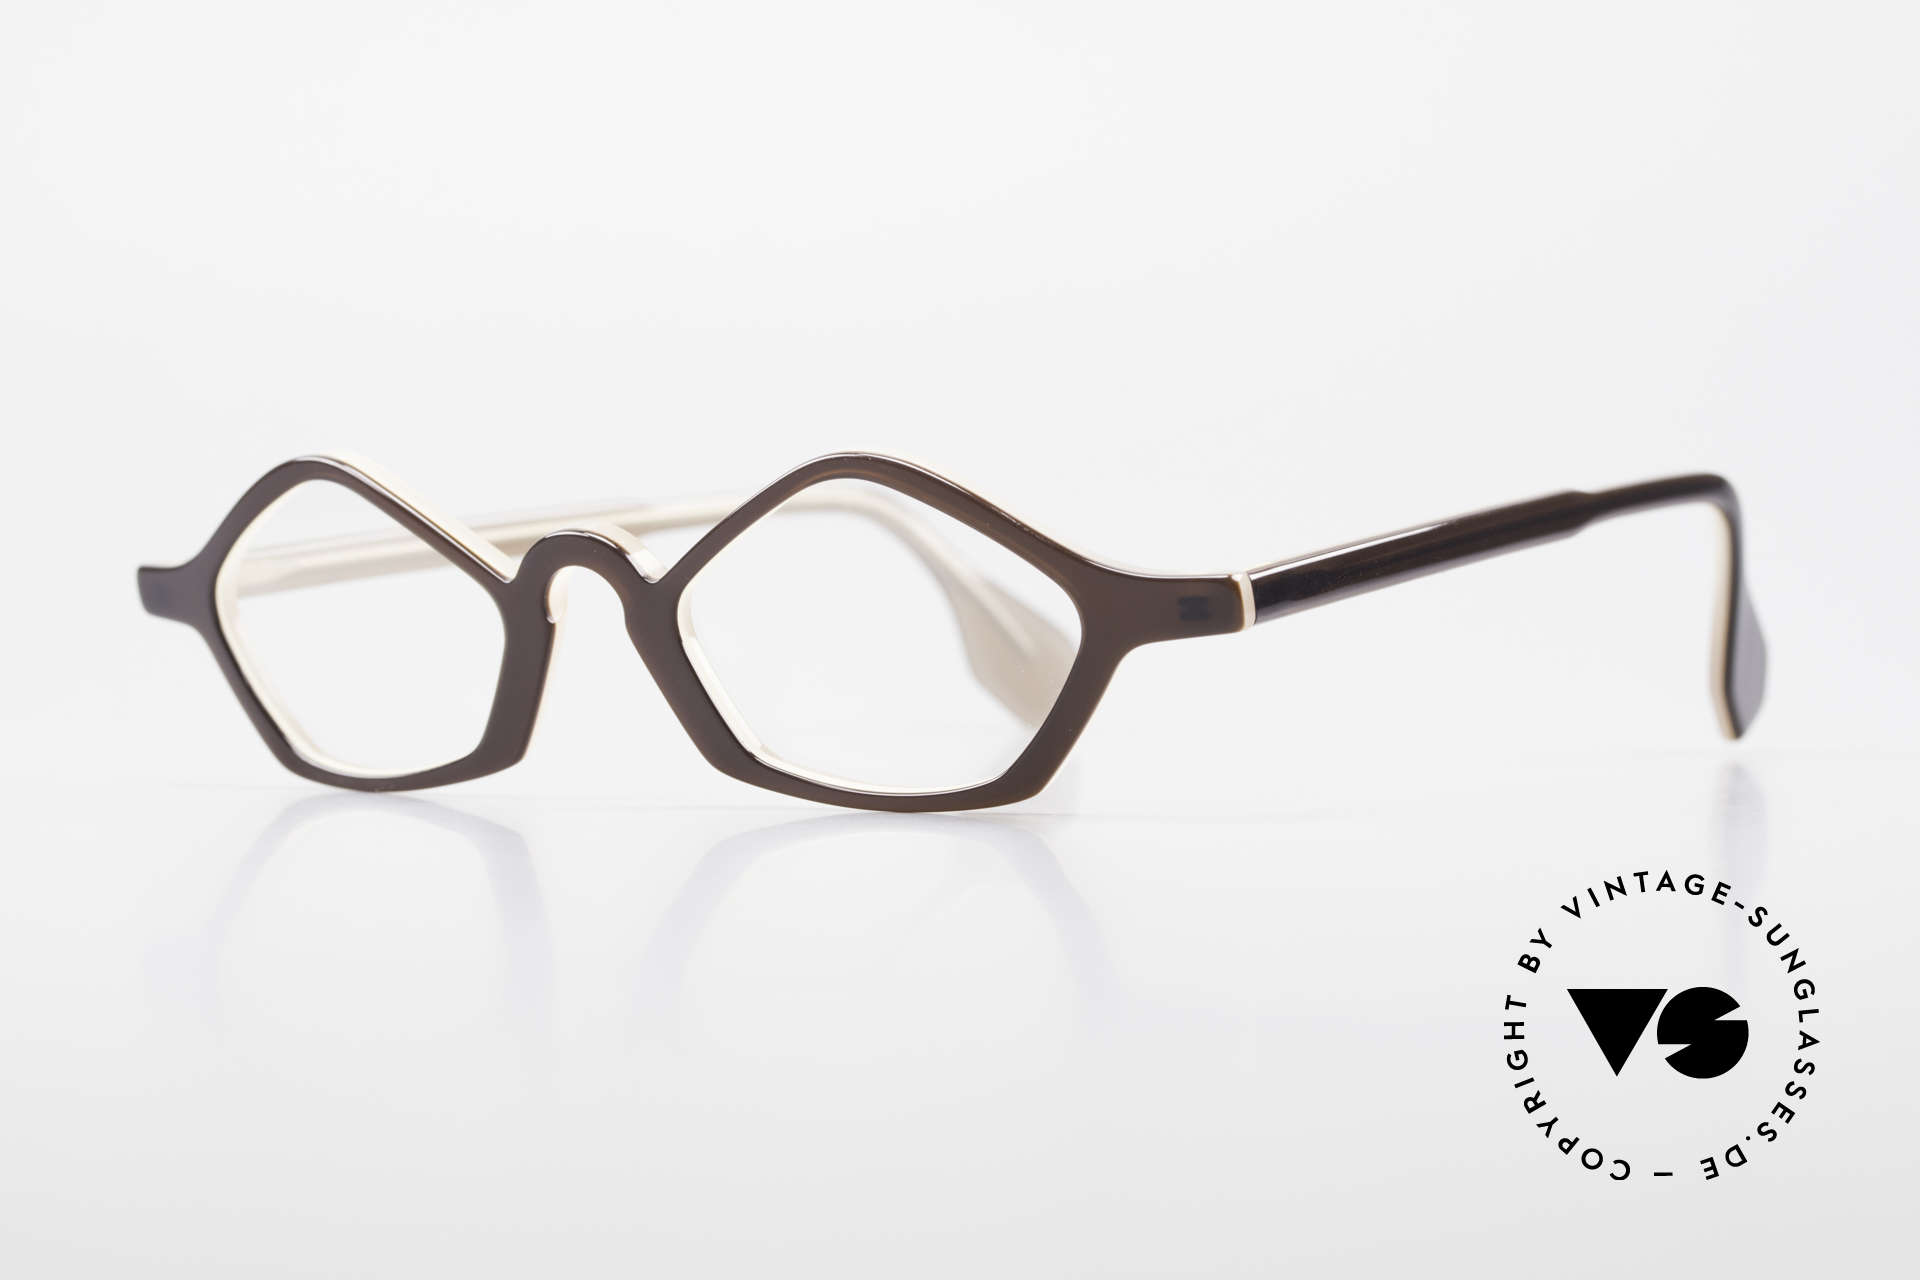 Theo Belgium Polygone Geometrical Plastic Eyeglasses, made for the avant-garde, individualists & trend-setters, Made for Men and Women